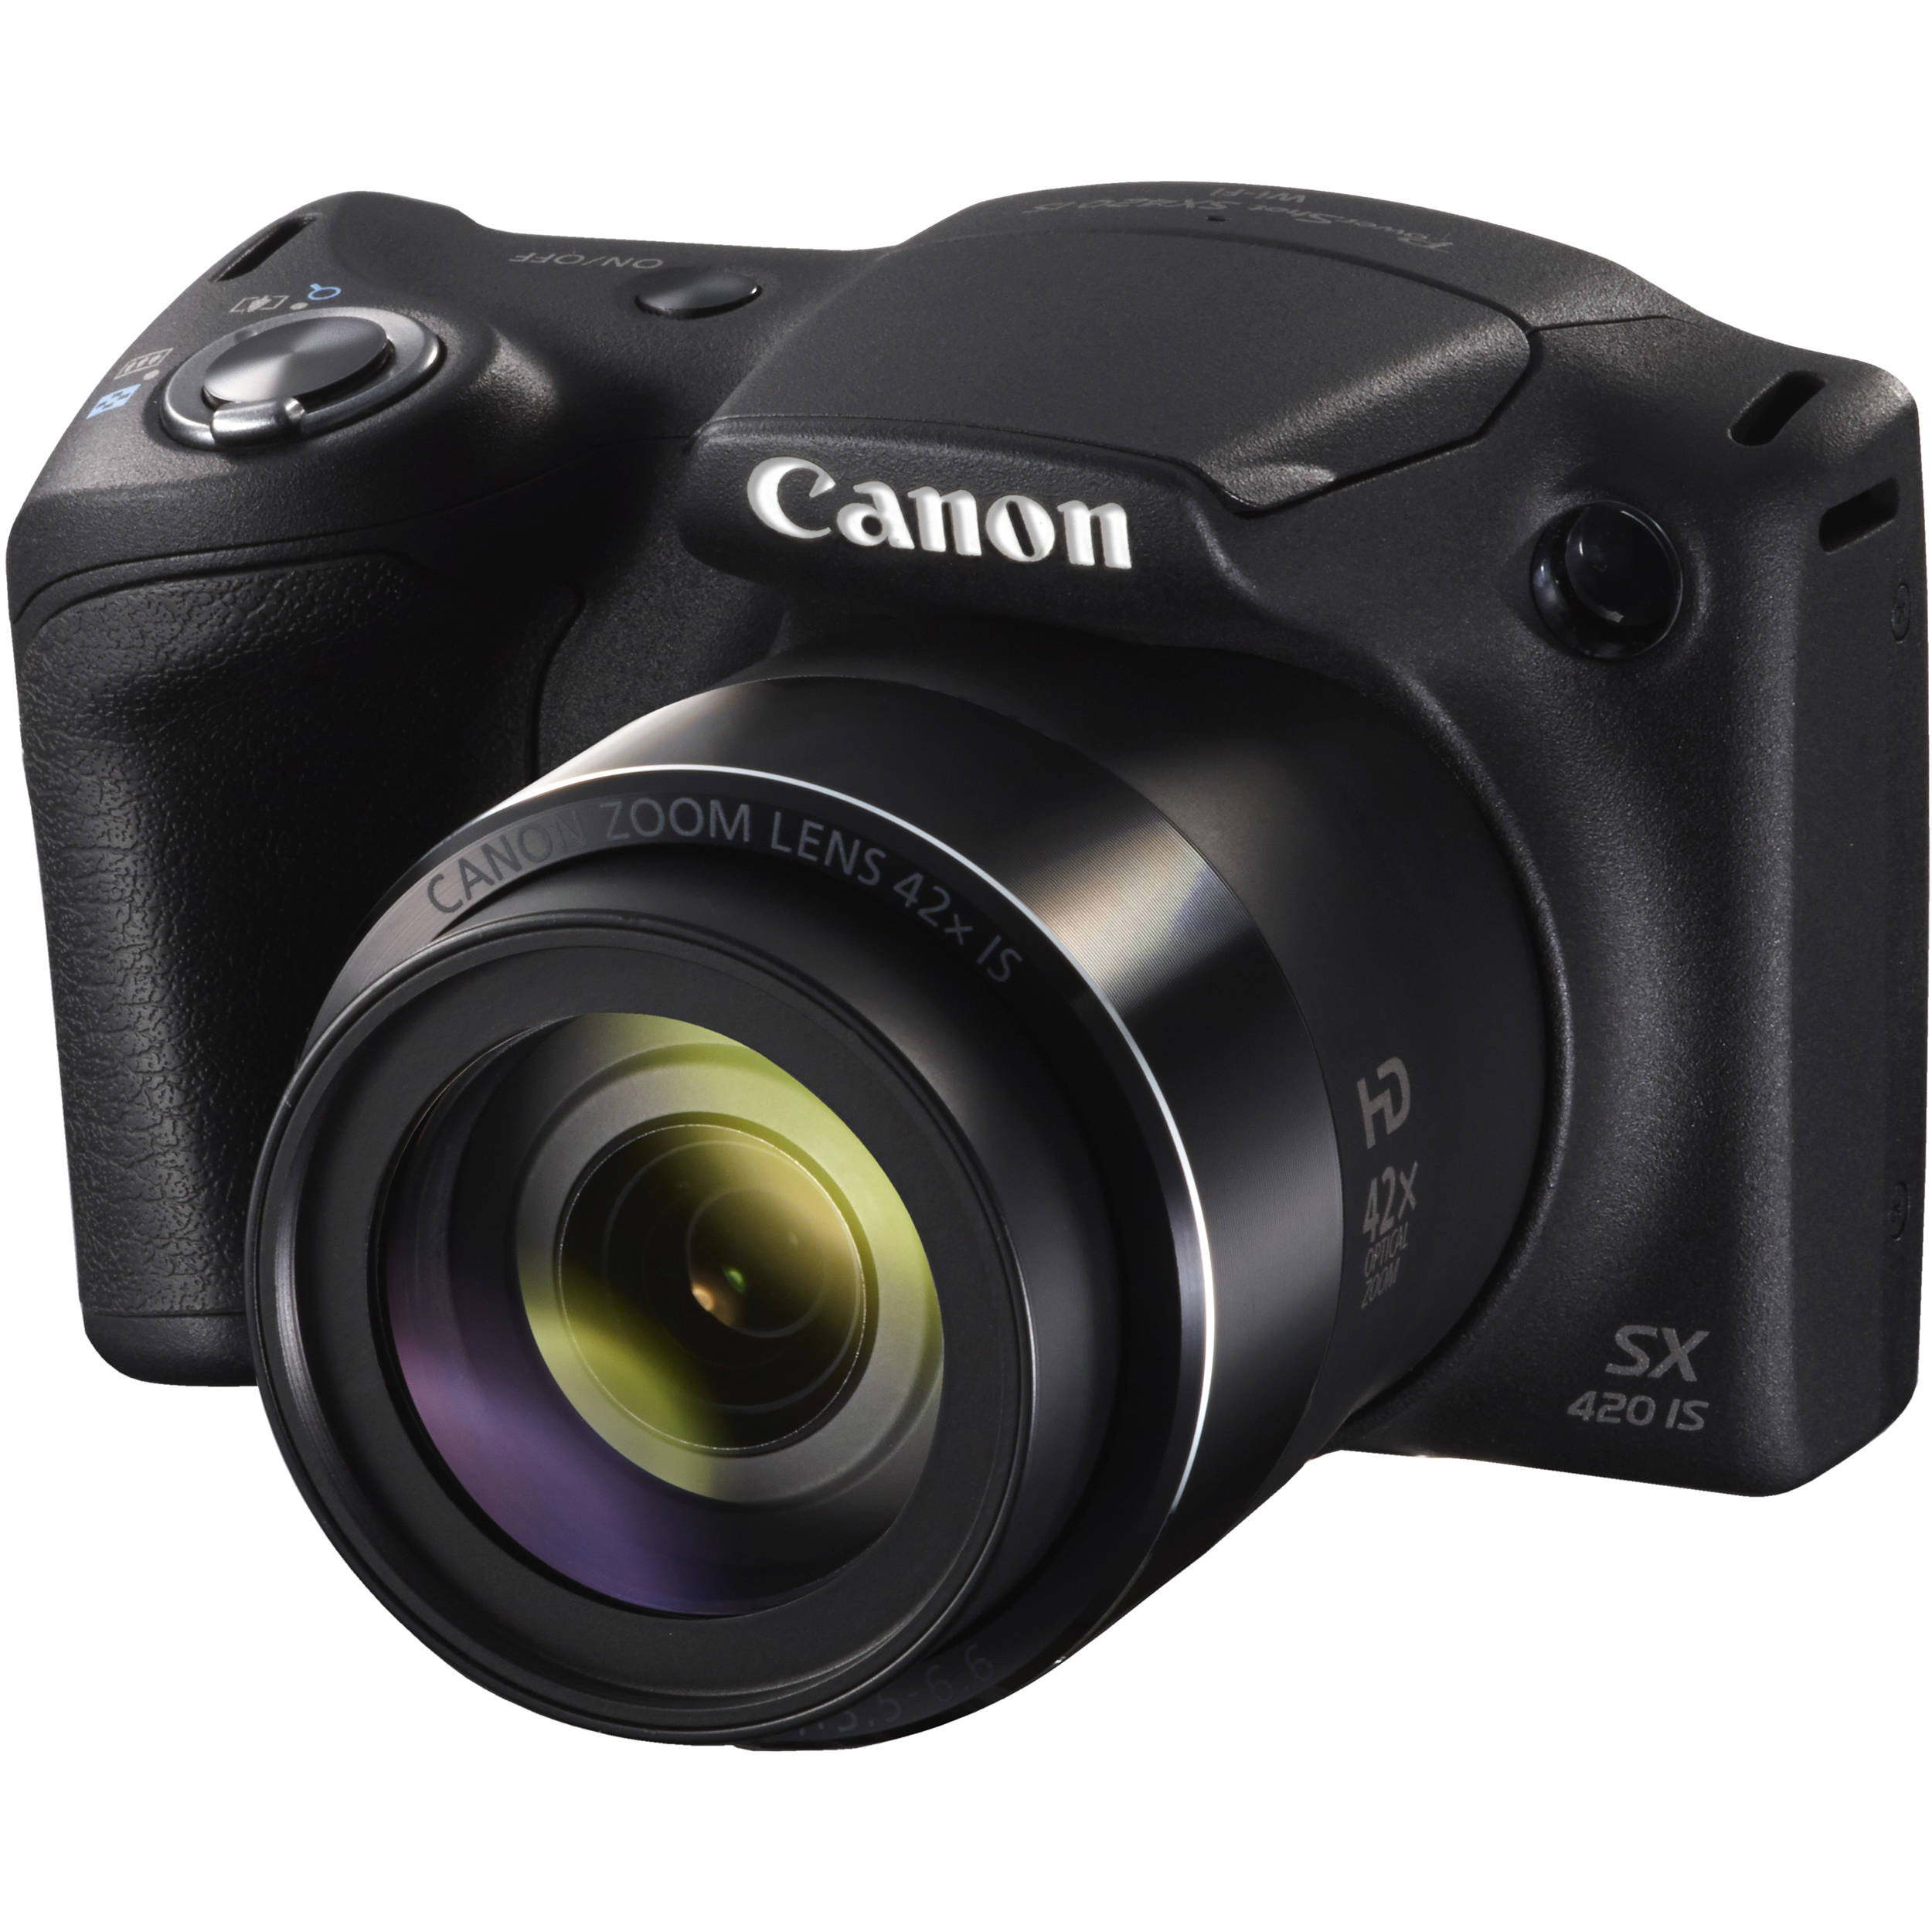 Modish Canon Powershot Is Digital Camera Canon Is Replacement Canon Is Photo Video Canon Powershot Sx400 Is Price Canon Powershot Sx400 Sample Images dpreview Canon Powershot Sx400